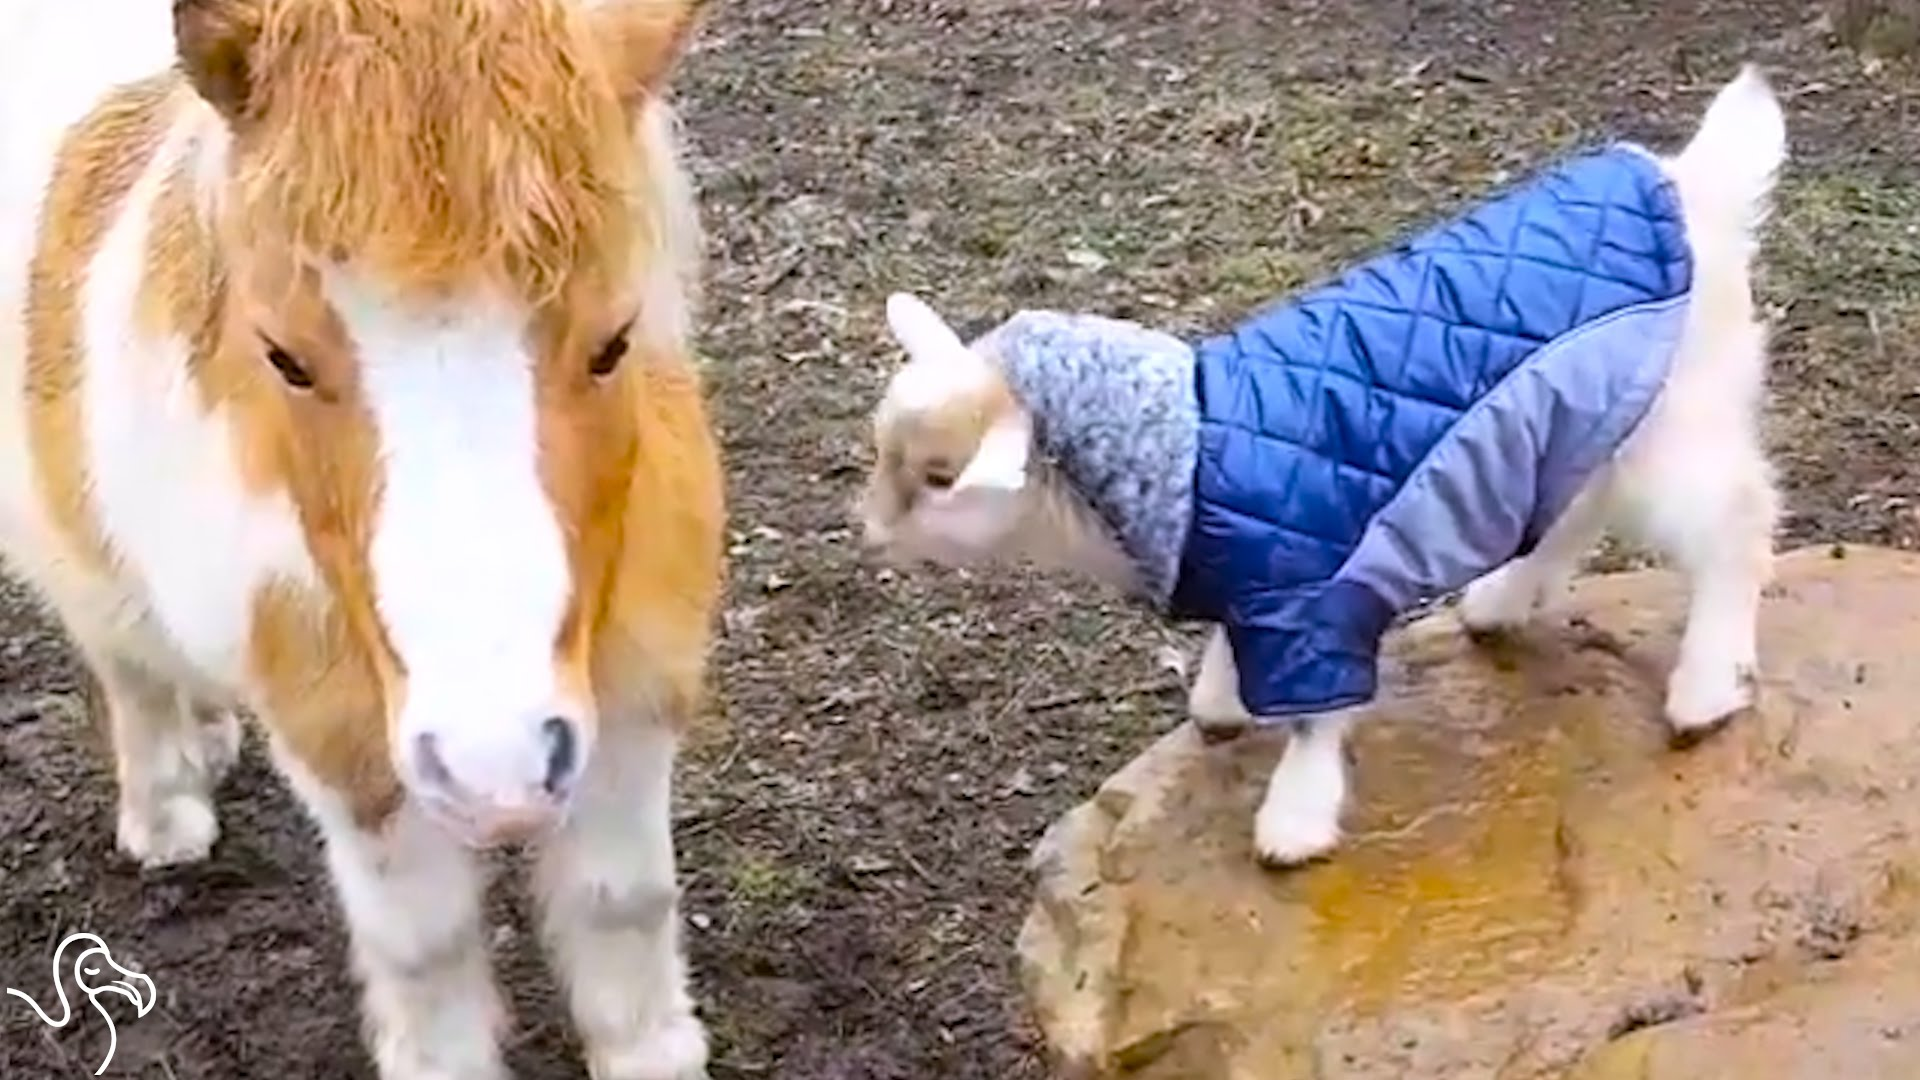 baby goat bounces around the farm in little jackets